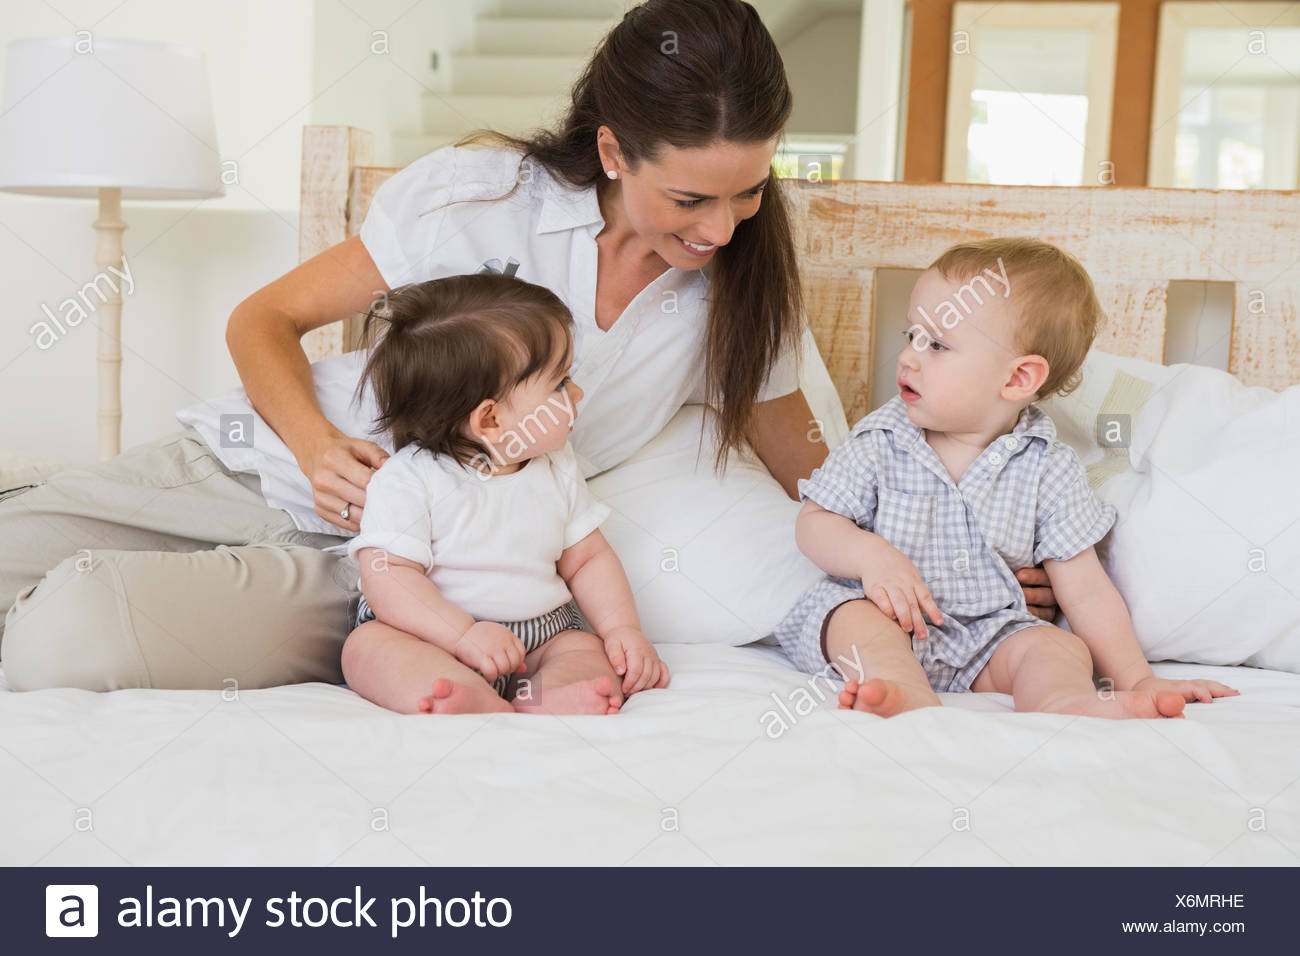 Happy Mother With Cute Babies Boy And Girl Stock Photo 279511386